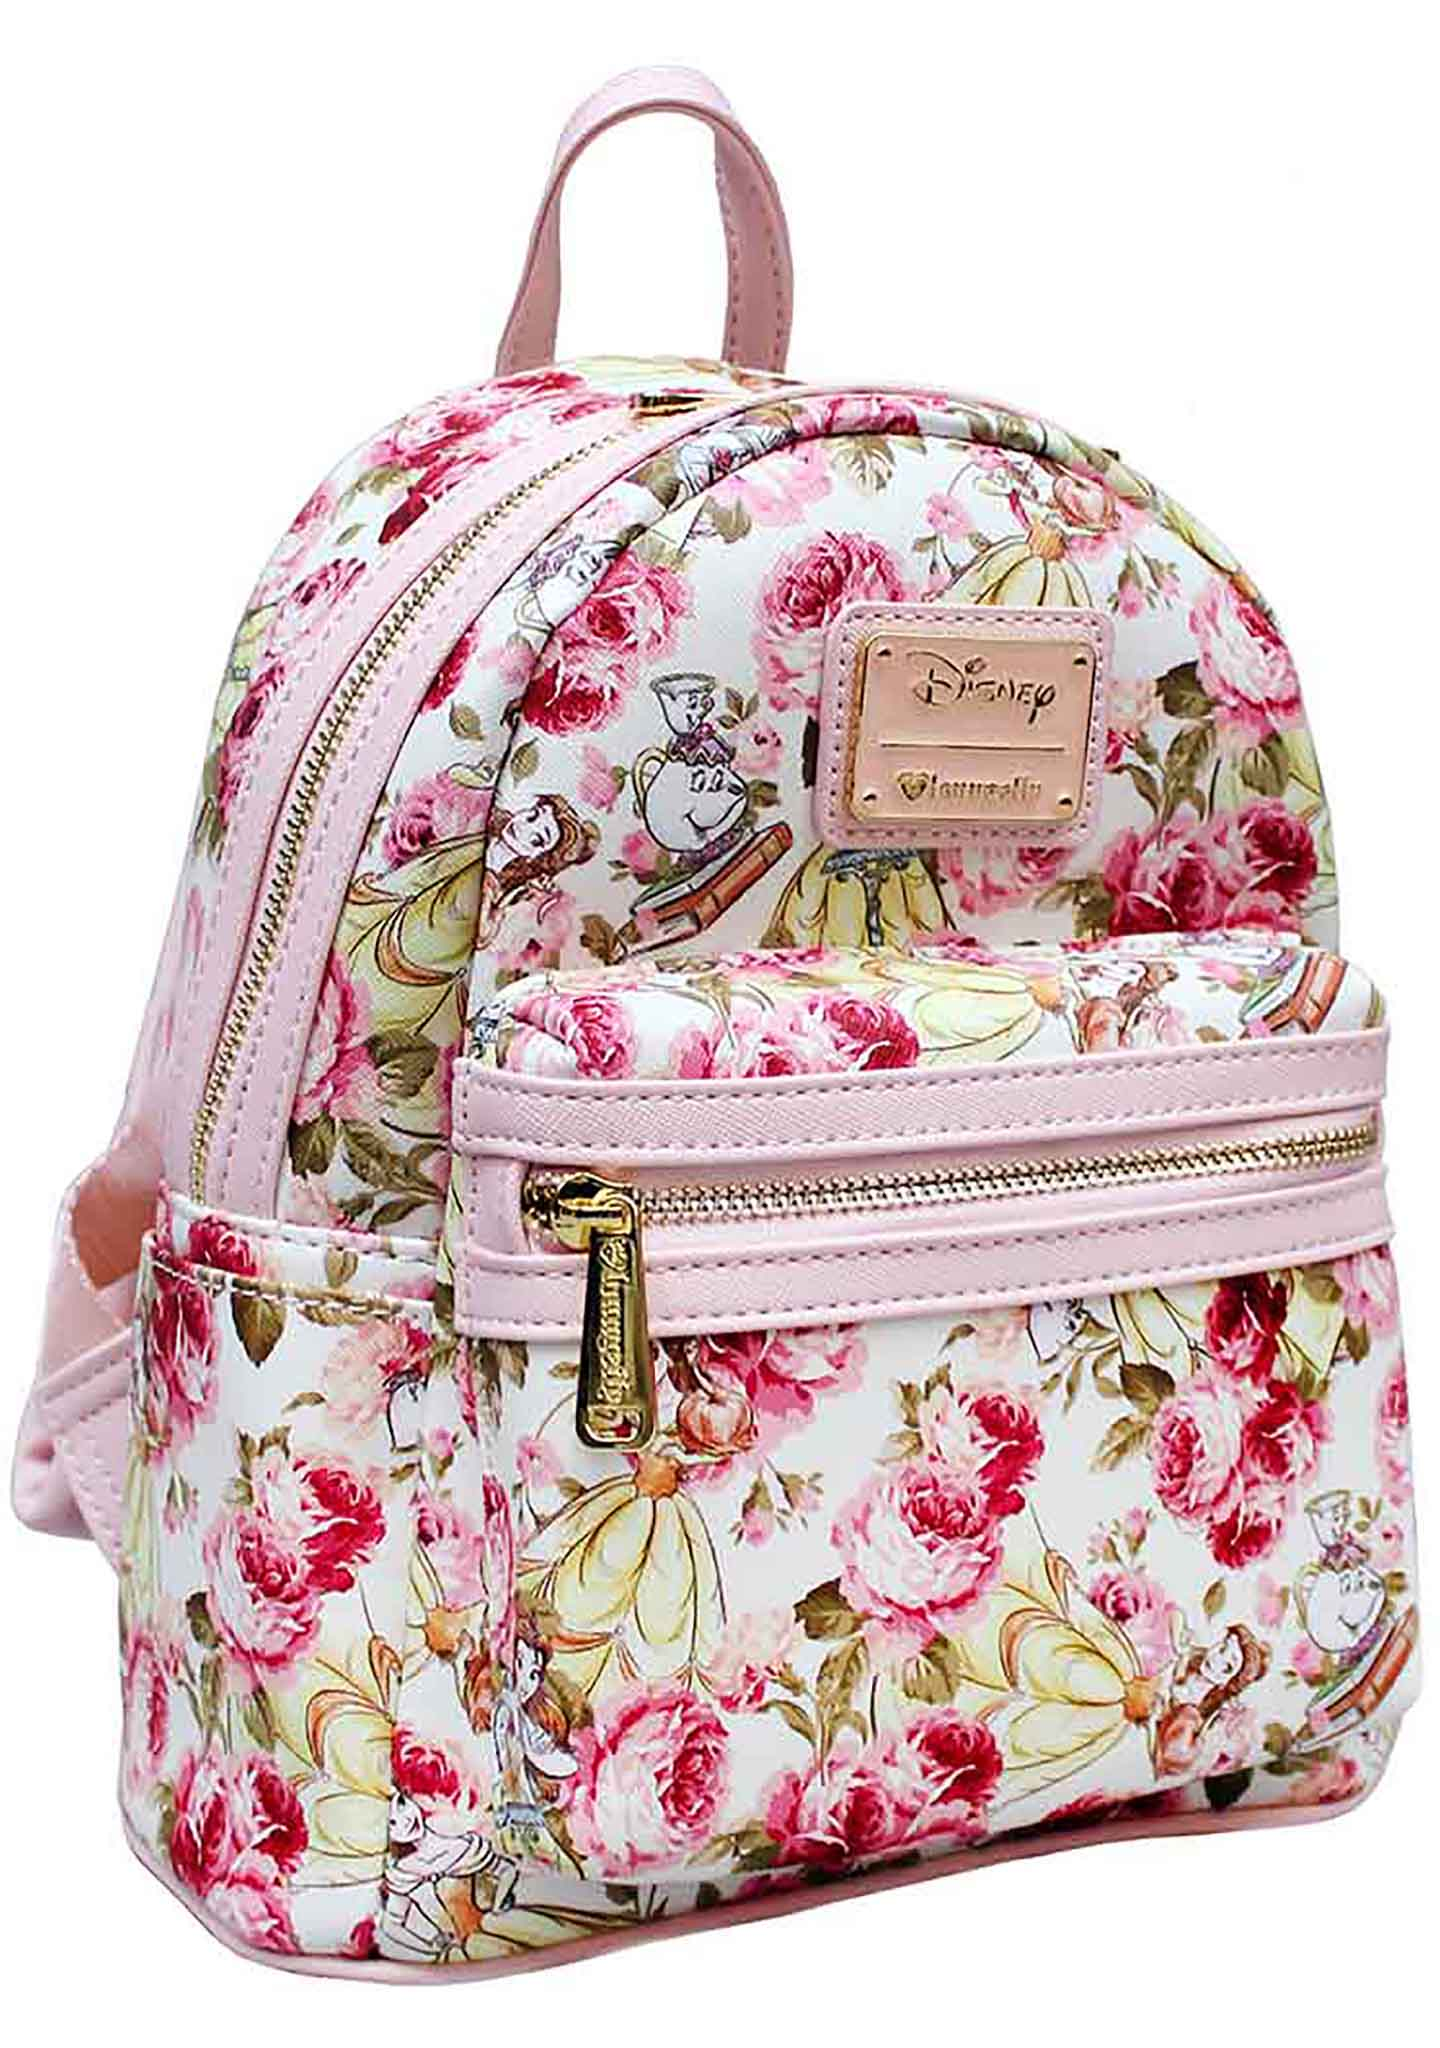 94ce3c284c4 Loungefly X Disney Belle Floral AOP Mini Backpack